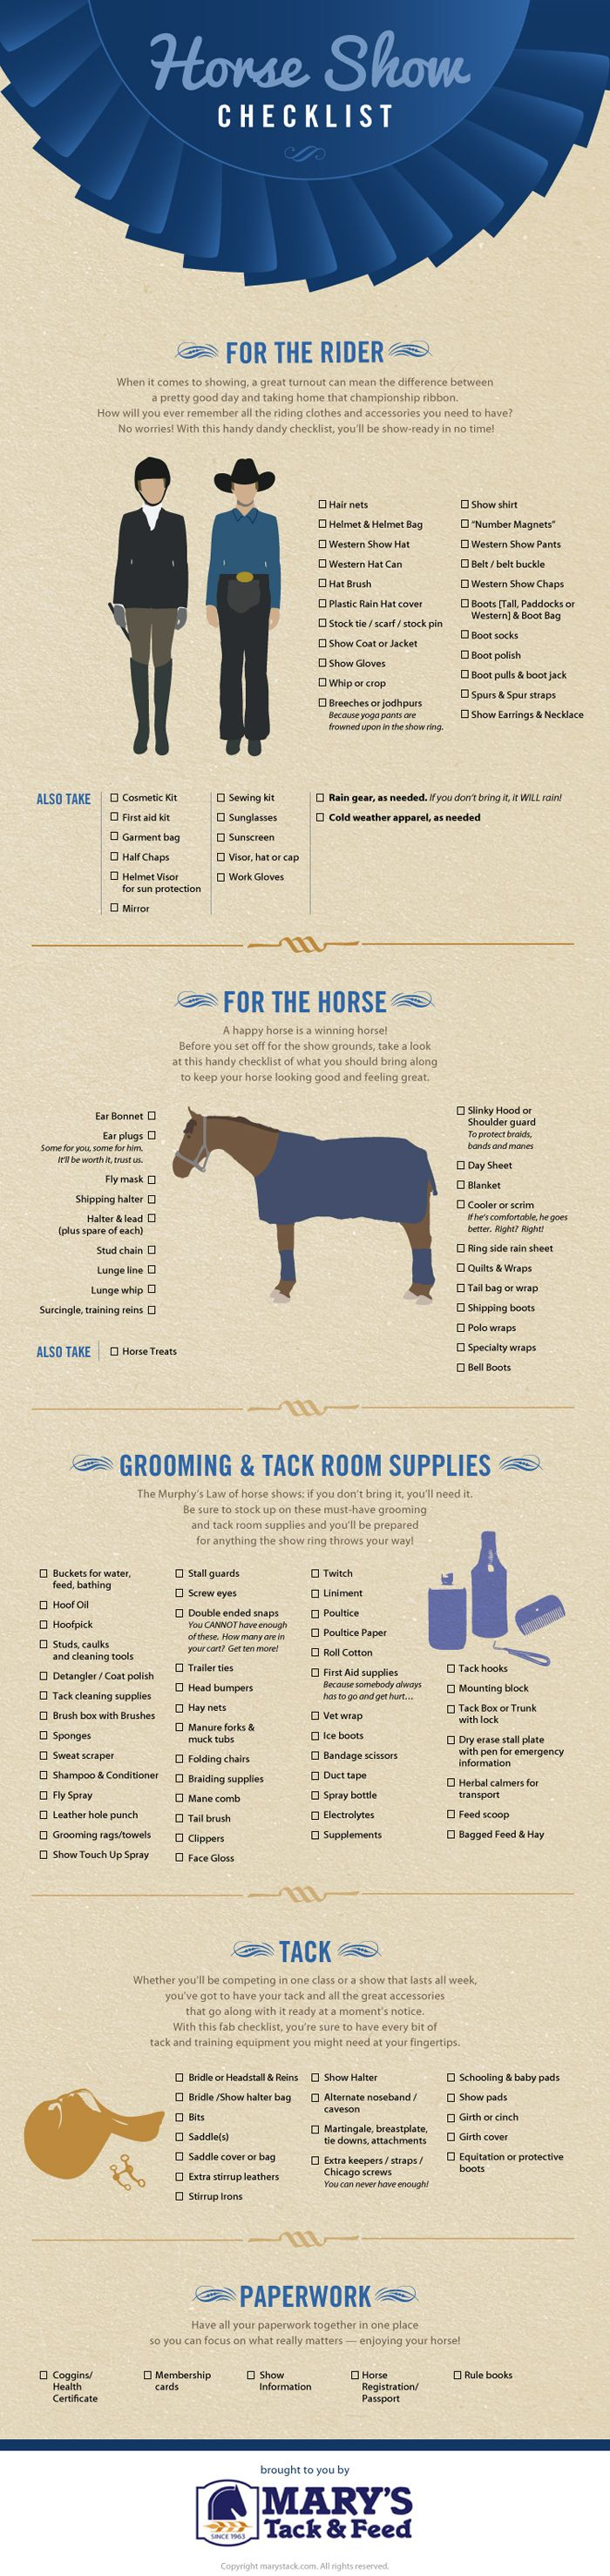 Horse Show Checklist: What You Need for a Horse Show -- Check out this #infographic #design from Mary's Tack & Feed and see if you have everything you need.